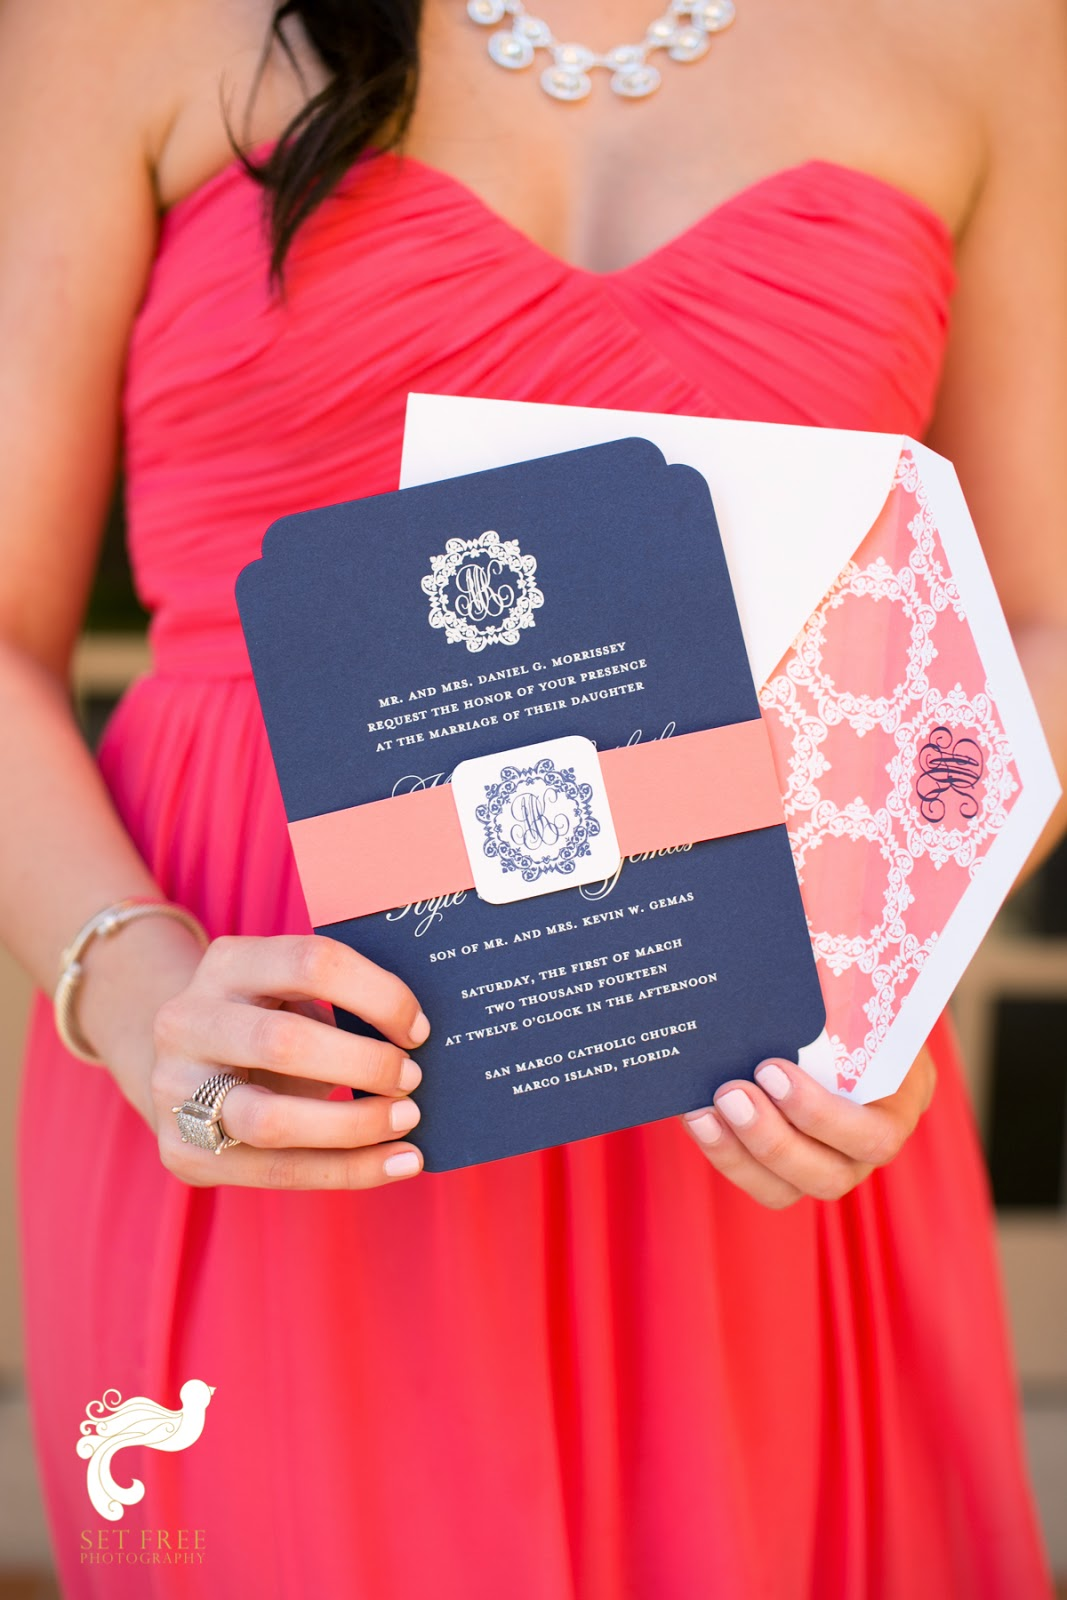 Nico and LaLa: Preppy Monogrammed Wedding at the Ritz-Carlton